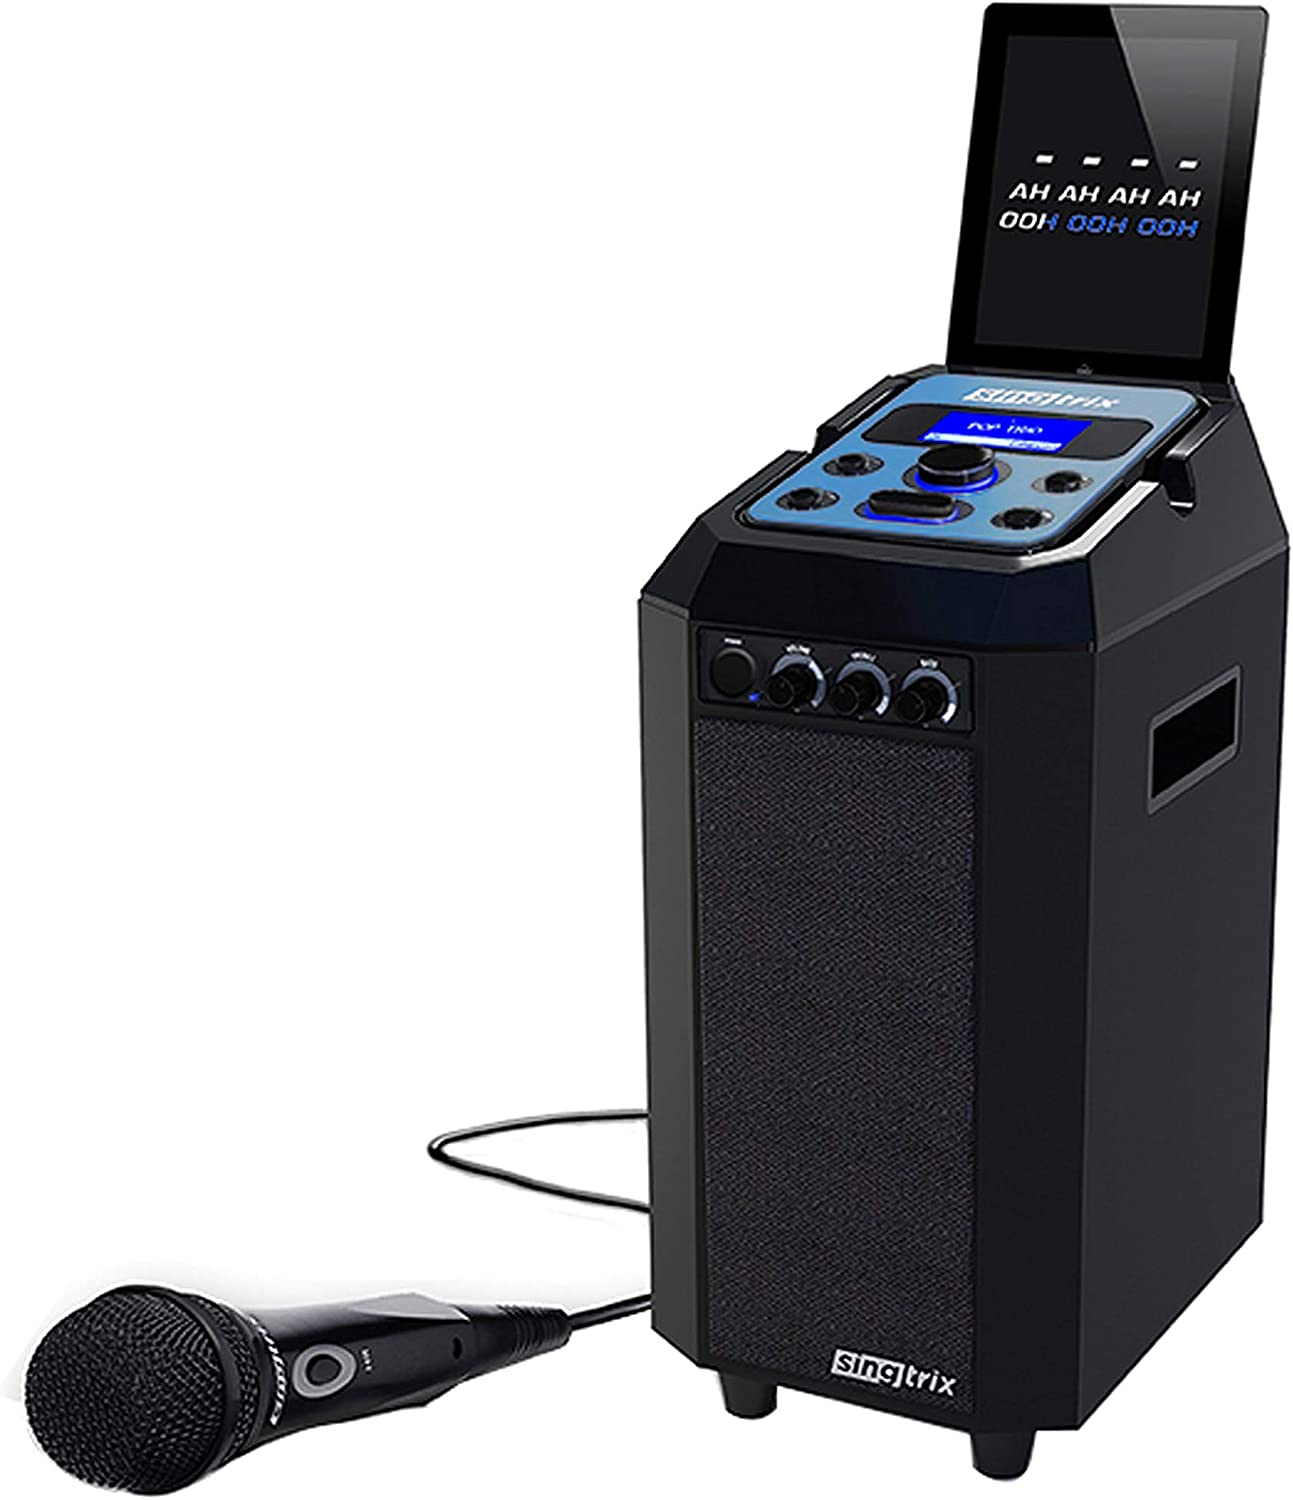 Singtrix Family Party Bundle Second Edition Karaoke Machine for Kids and Adults as seen on Shark Tank – Includes Microphone, Speaker and Pro Voice Tuning Technology and Effects, Black (SGTXCOMBO2)